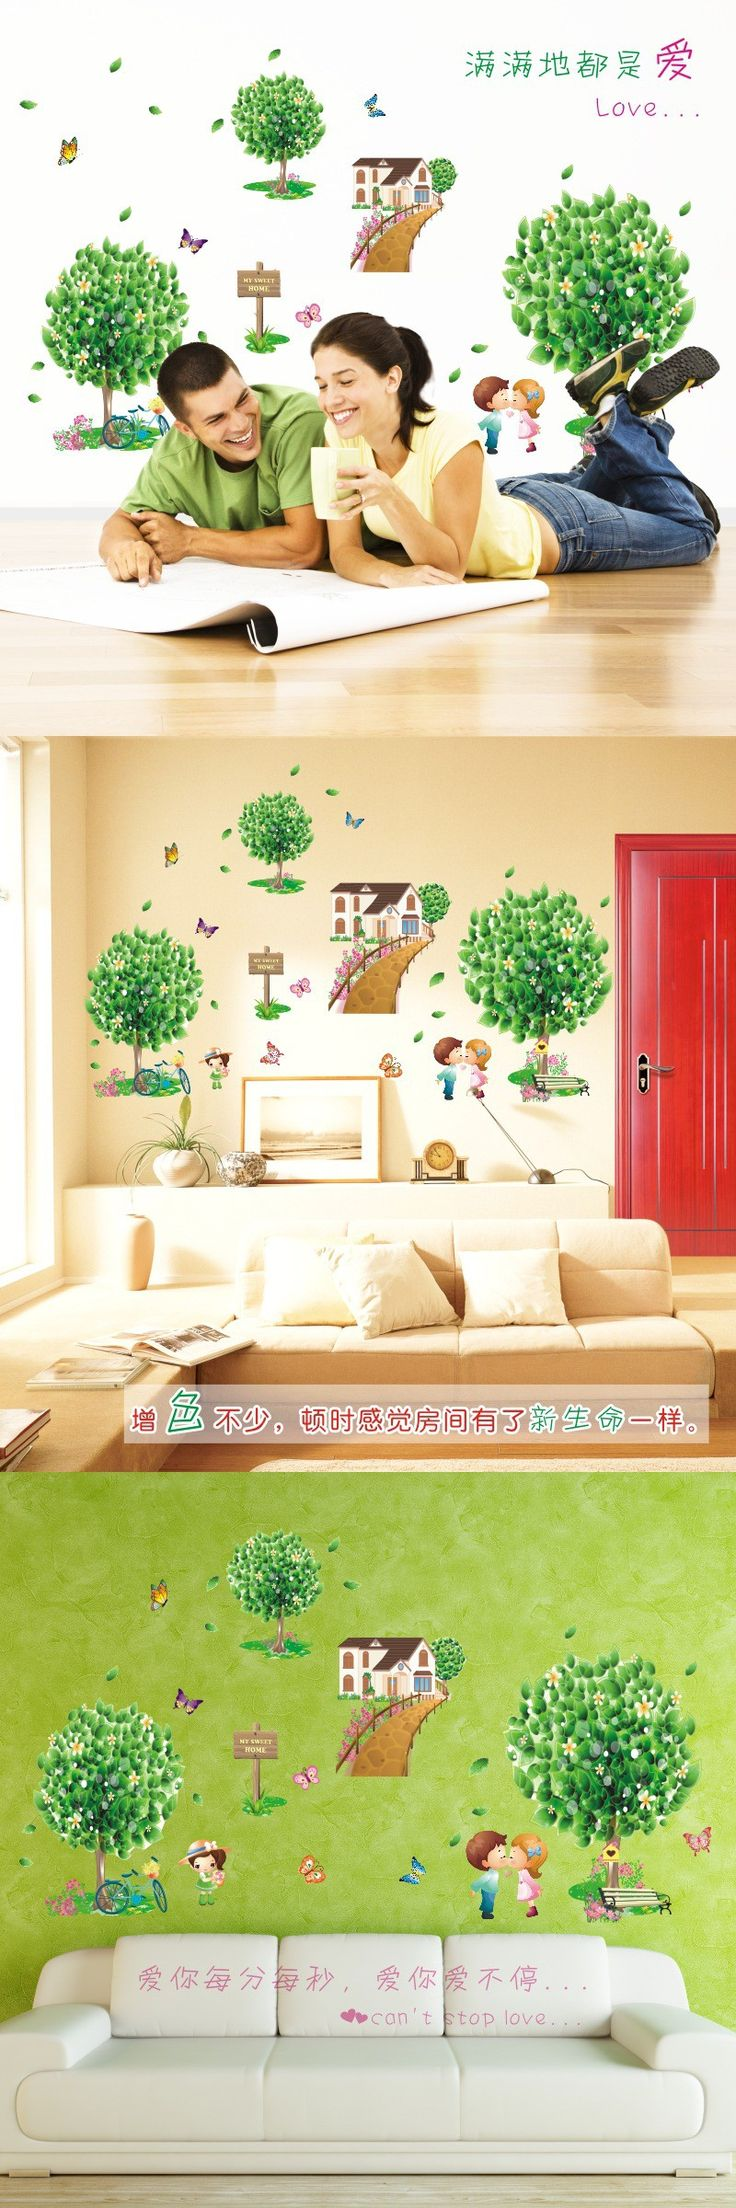 Best 25 contemporary wall stickers ideas on pinterest new home decoration removable wall stickers wholesale creative green tree love simple love sticker xl7096 amipublicfo Gallery